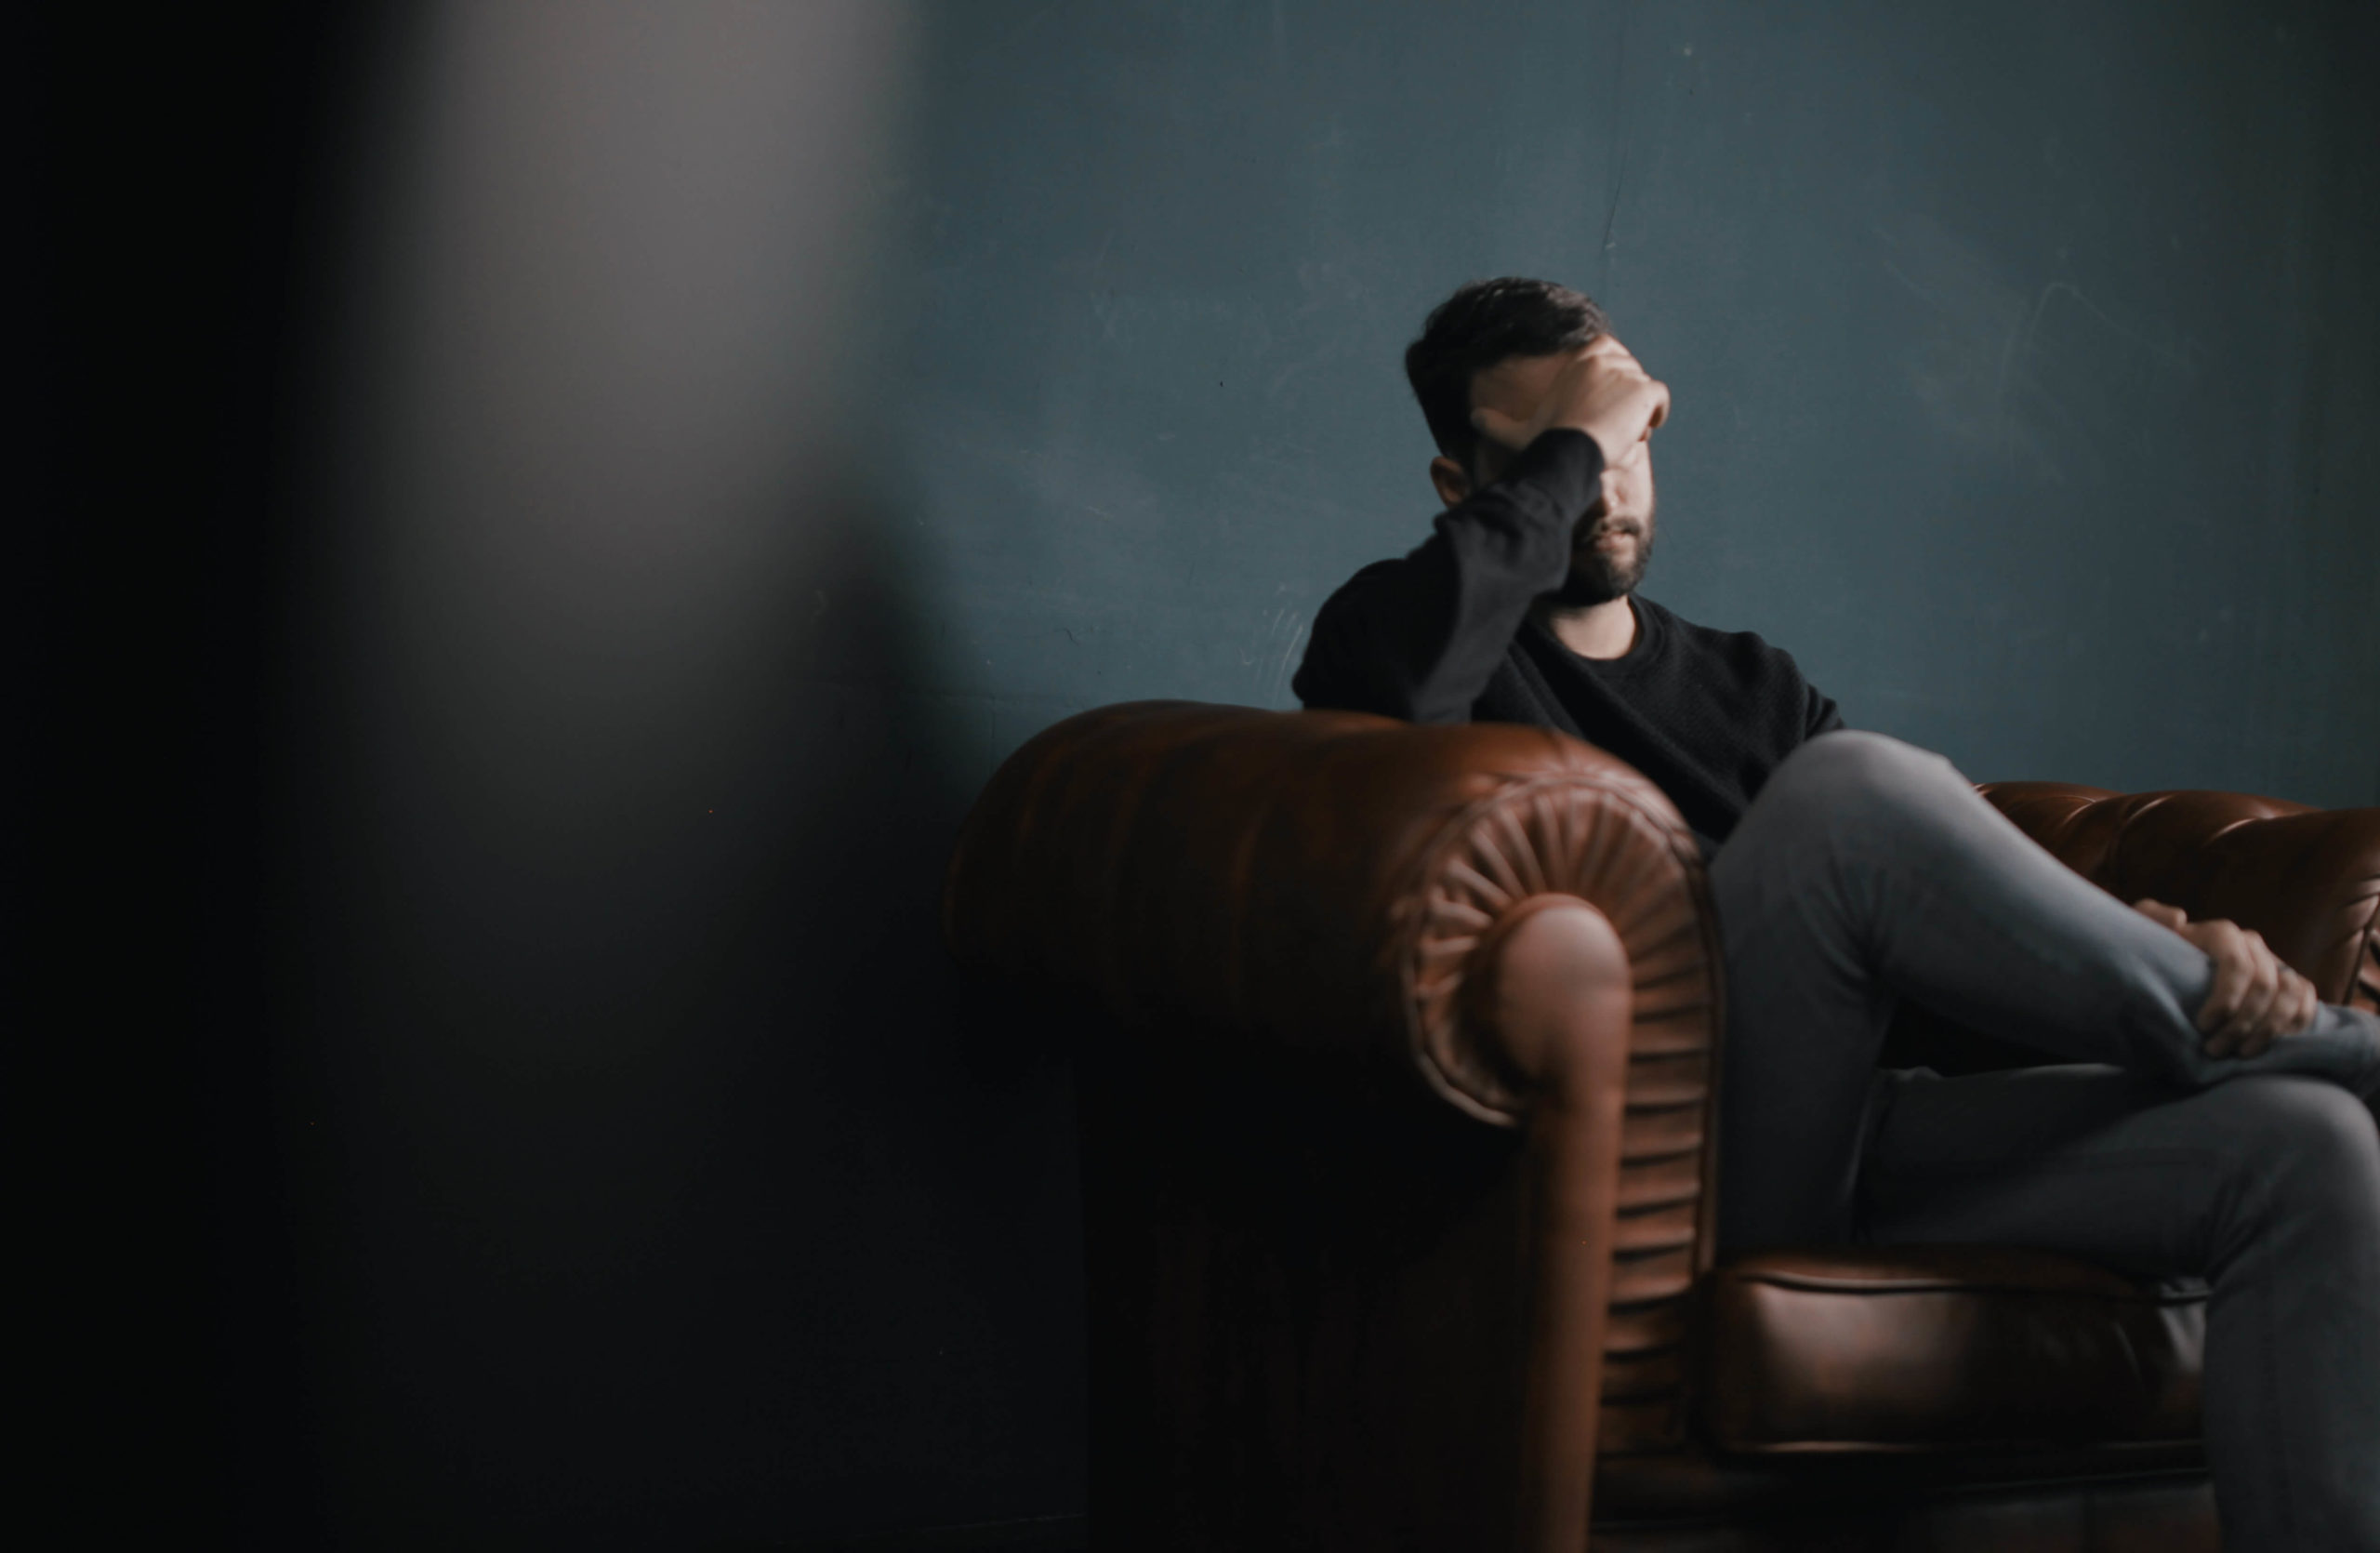 Man sitting on a sofa covering his face